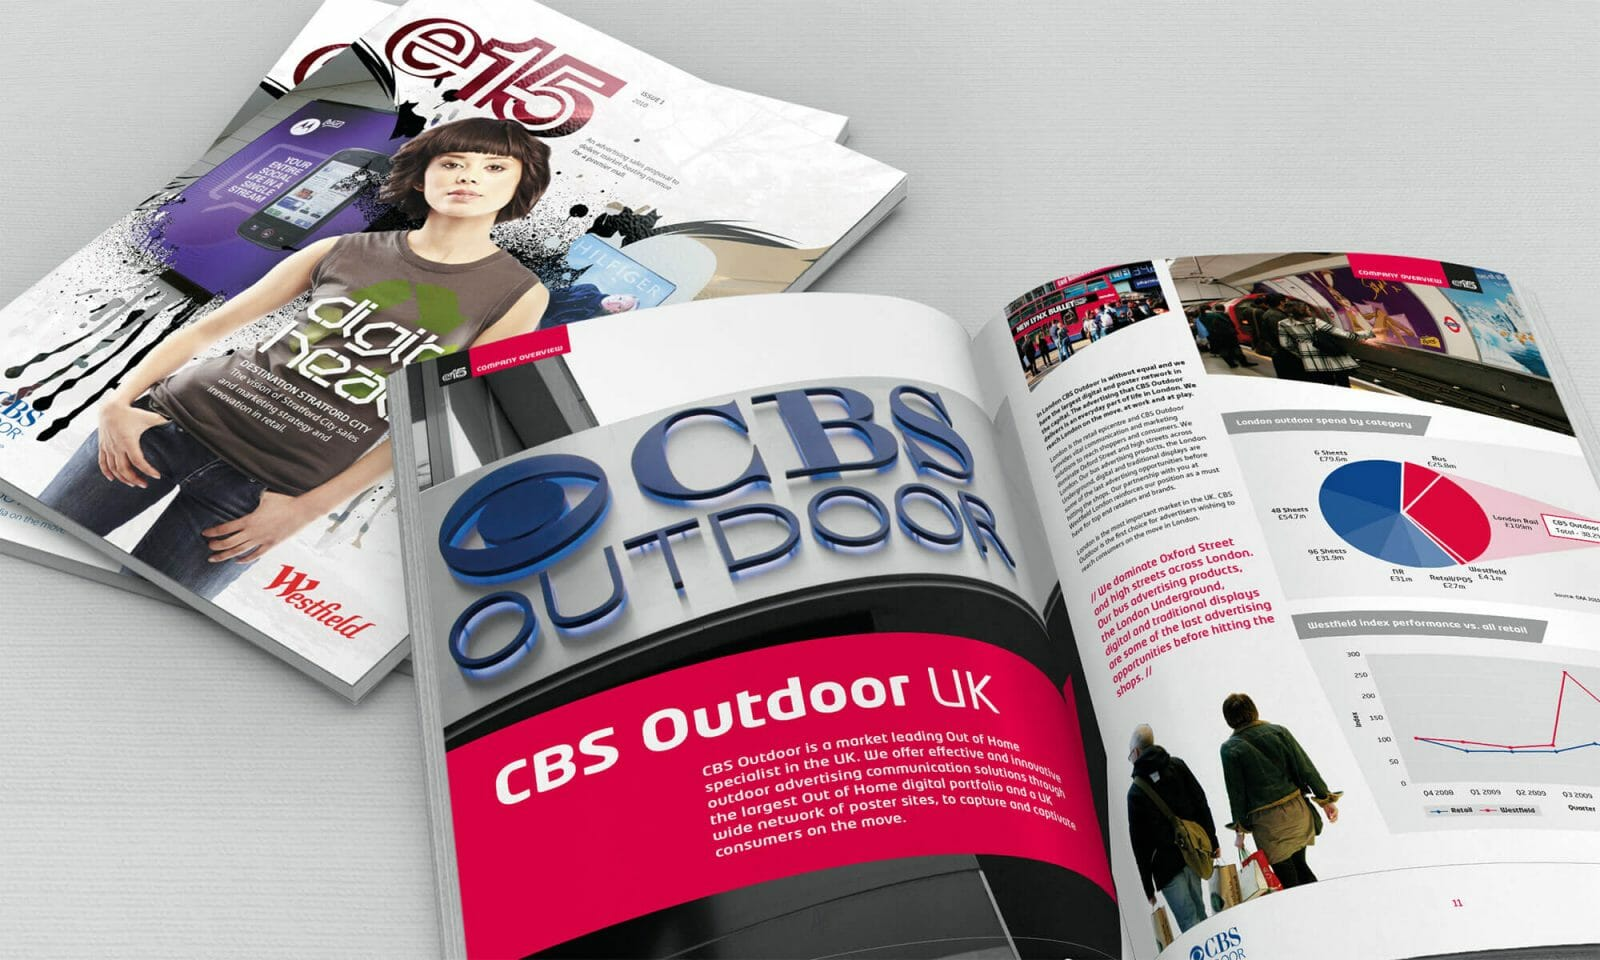 CBS Outdoor pitch to Westfield Stratford City